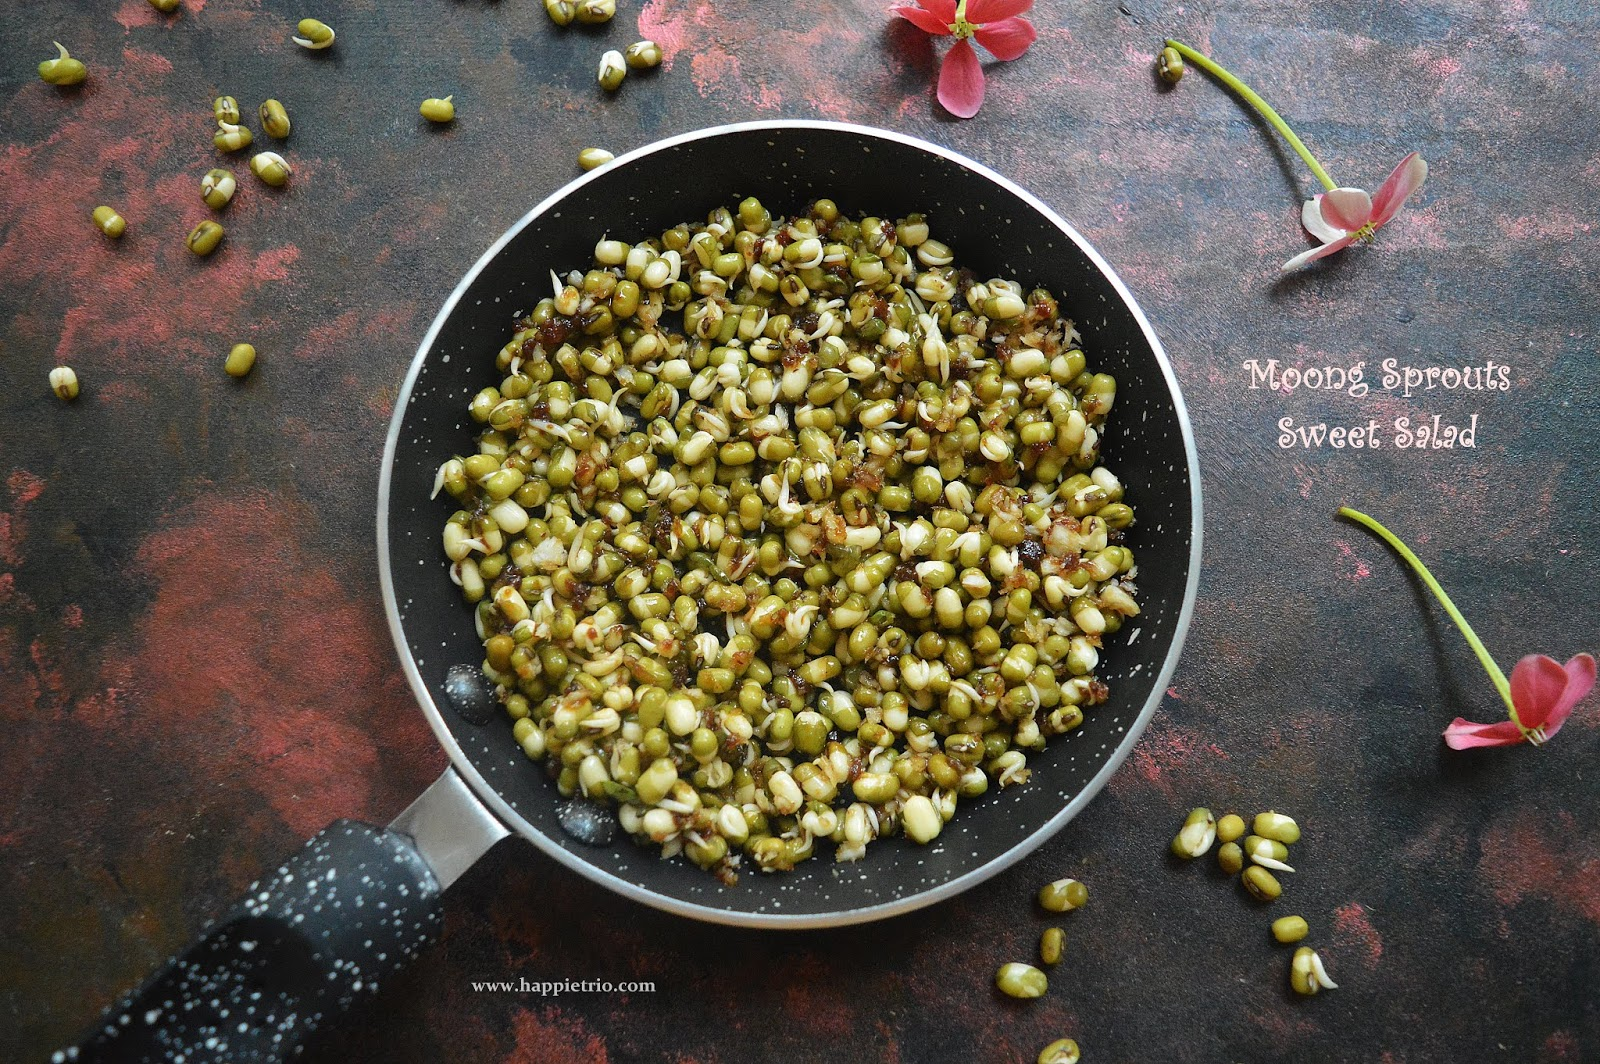 Moong sprouts Sweet Salad Recipe | Moong Sprouts Salad